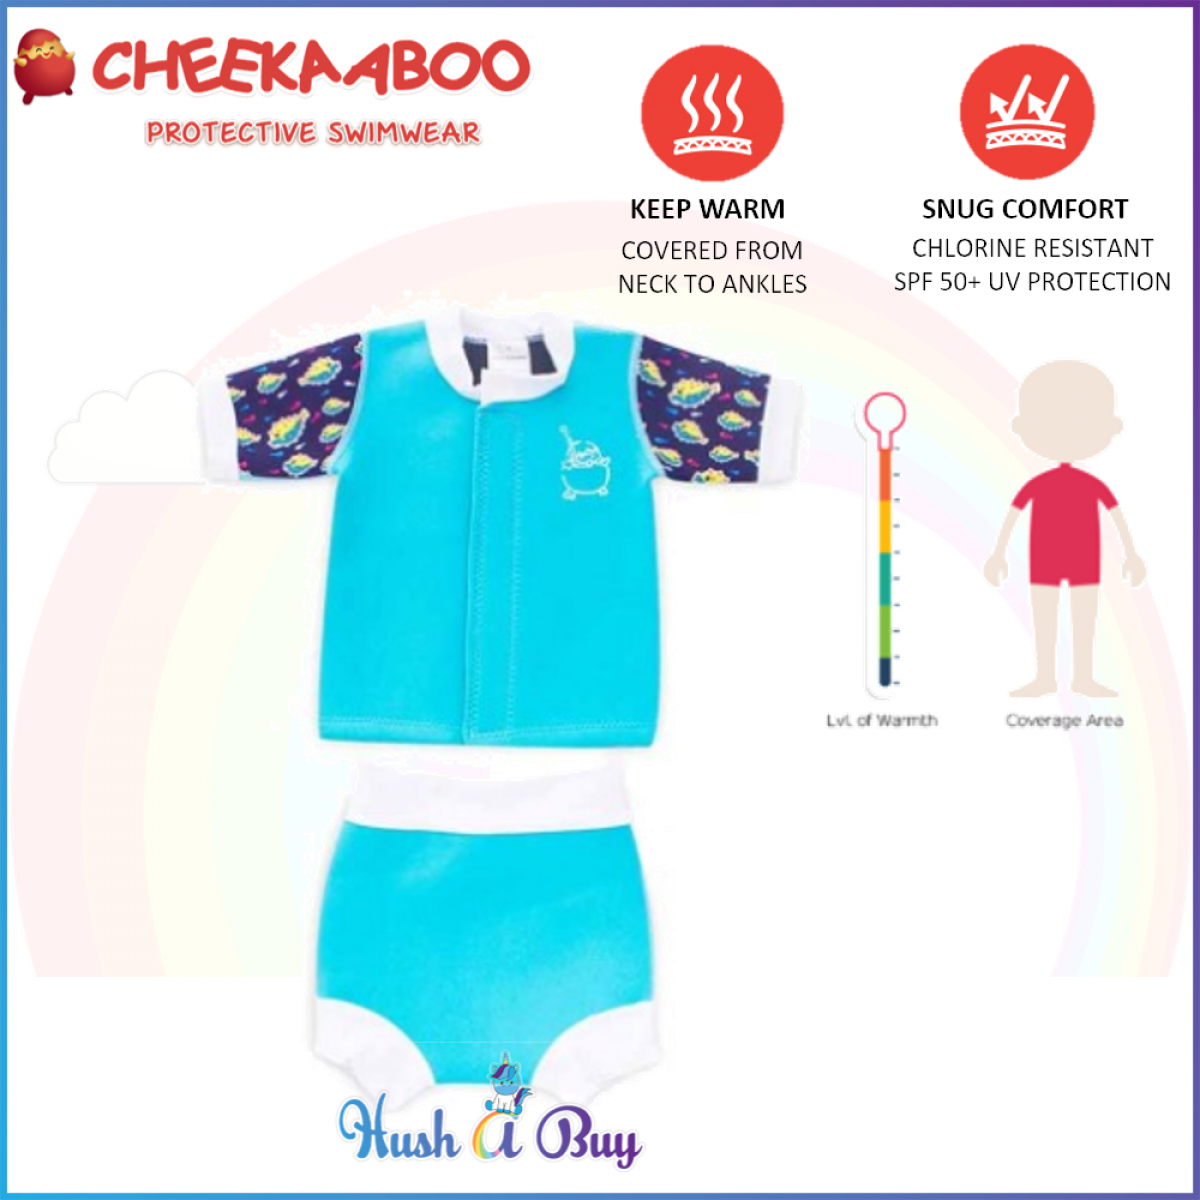 Cheekaaboo Huggiebabes Suit /Warmer/Swim Sui/2 piecet - Light Blue/PuferFish (6-18 months)